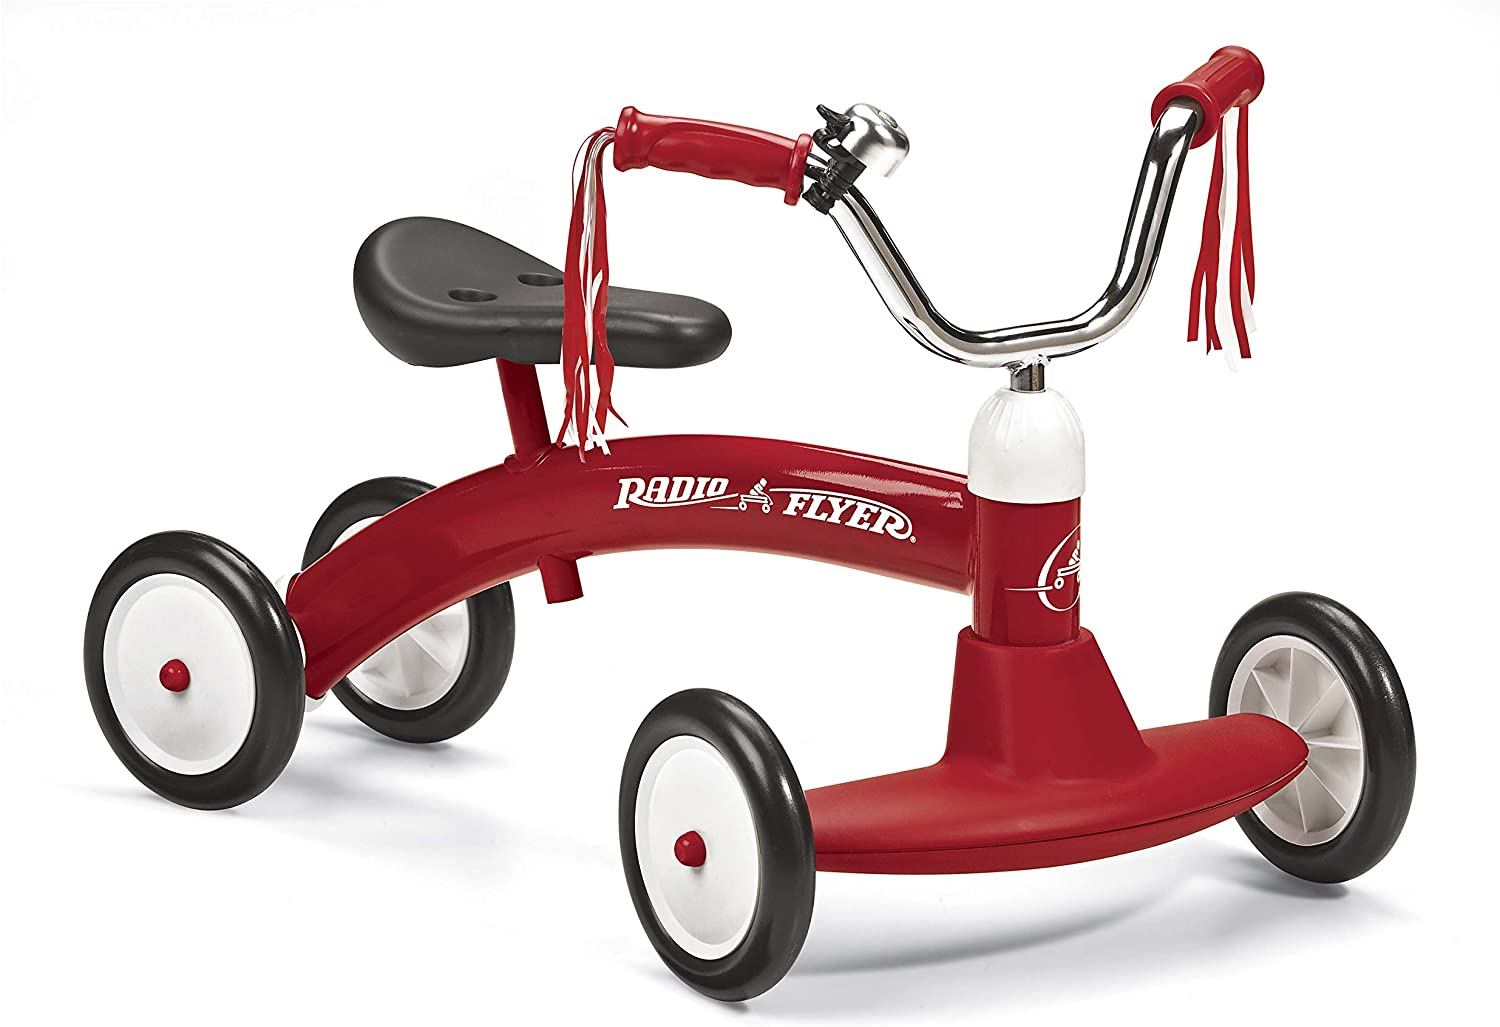 Radio Flyer Scoot-About, Toddler Ride On Toy, Ages 1-3